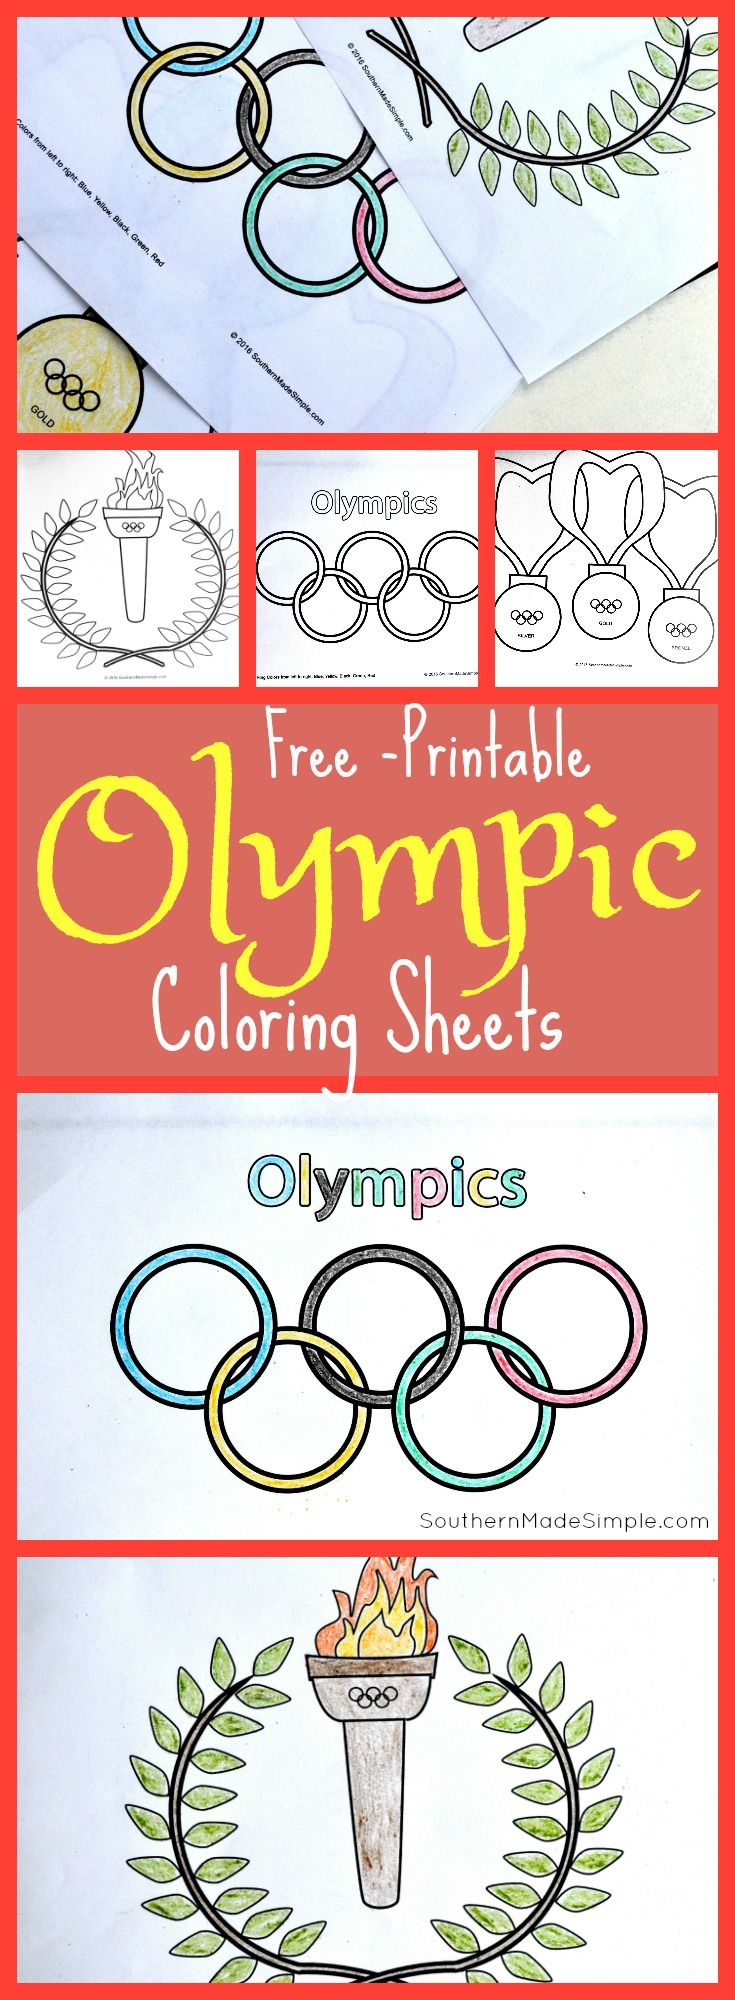 4 Ways To Celebrate The Olympics With Kids Free Coloring Sheets Southern Made Simple Olympic Games For Kids Olympic Crafts Free Kids Coloring Pages [ 2000 x 735 Pixel ]